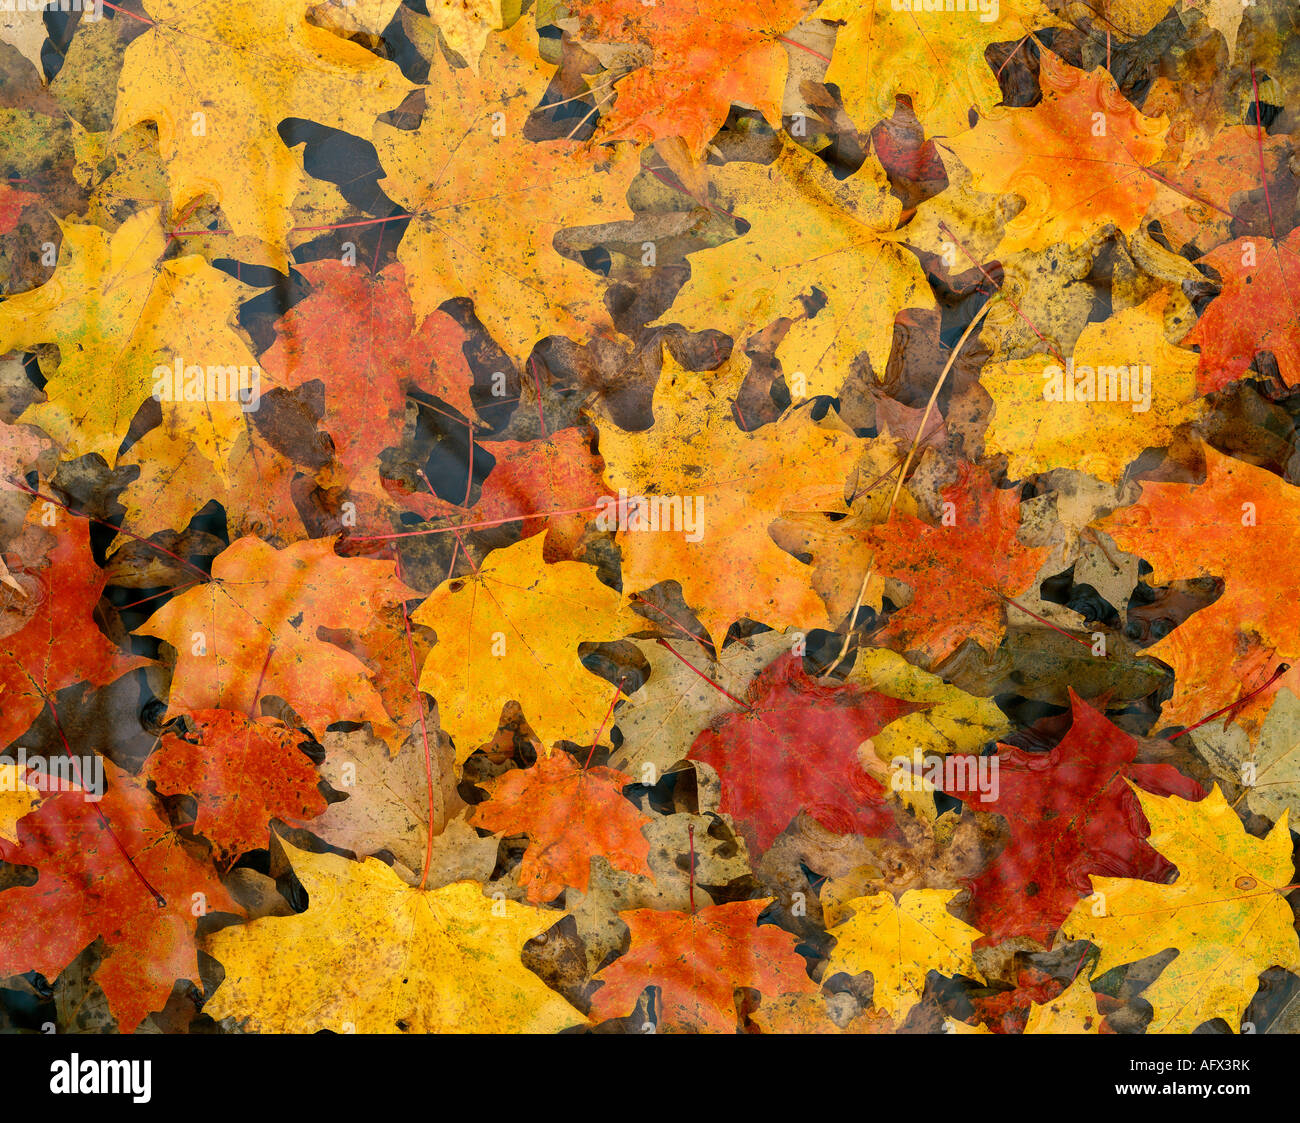 Autumn color sugar maple leaves on forest floor acer saccharum autumn color sugar maple leaves on forest floor acer saccharum eastern north america sciox Choice Image